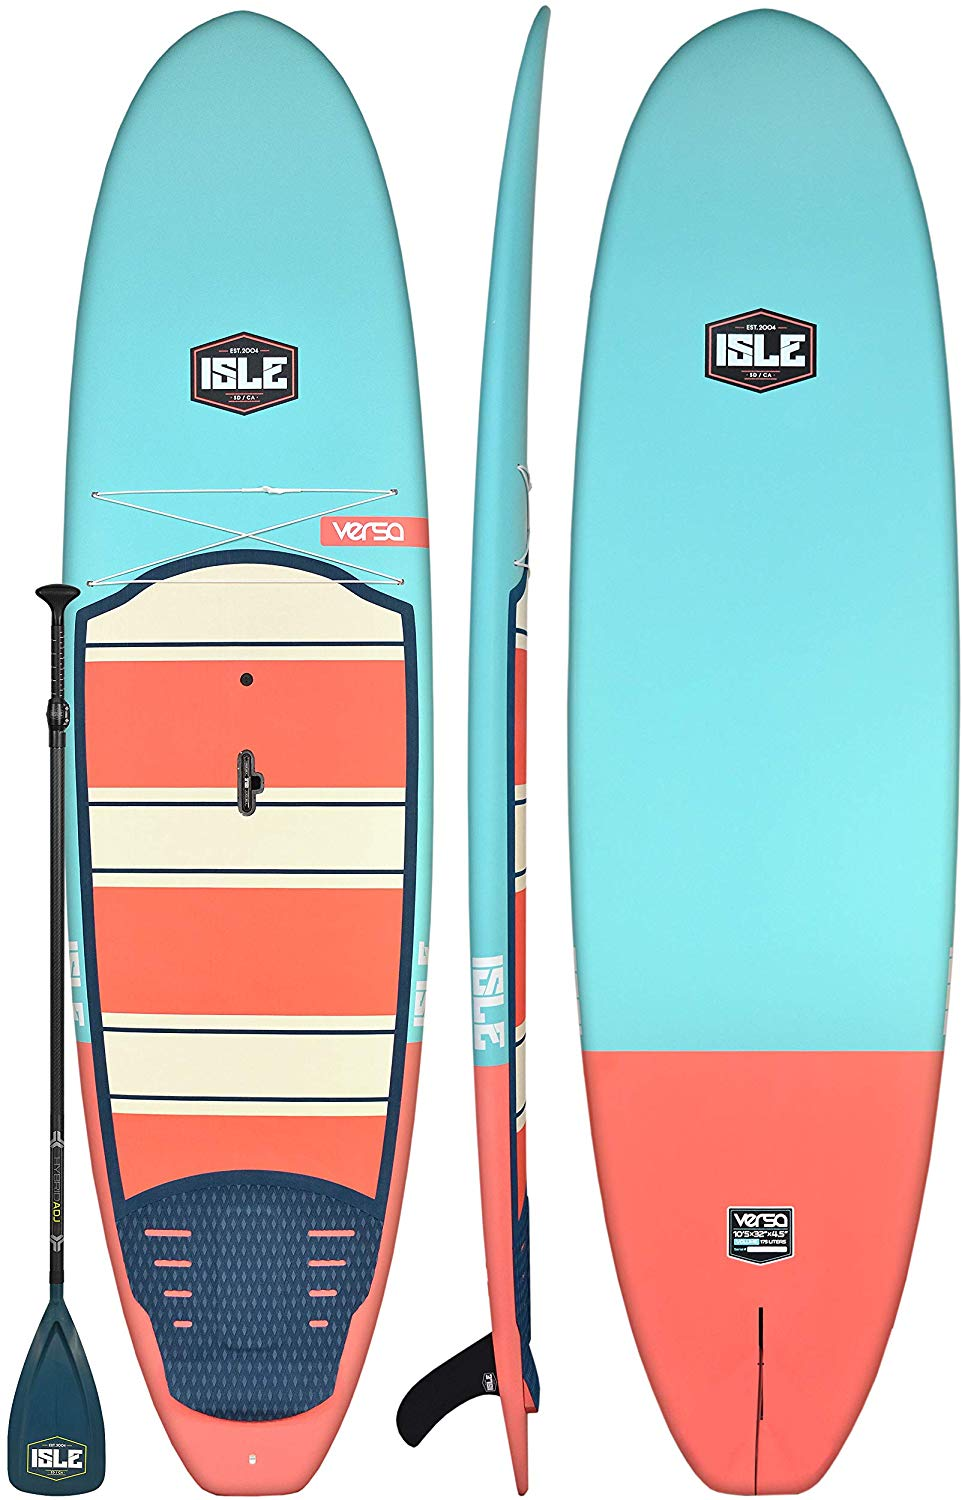 ISLE Versa | Rigid Stand Up Paddle Board